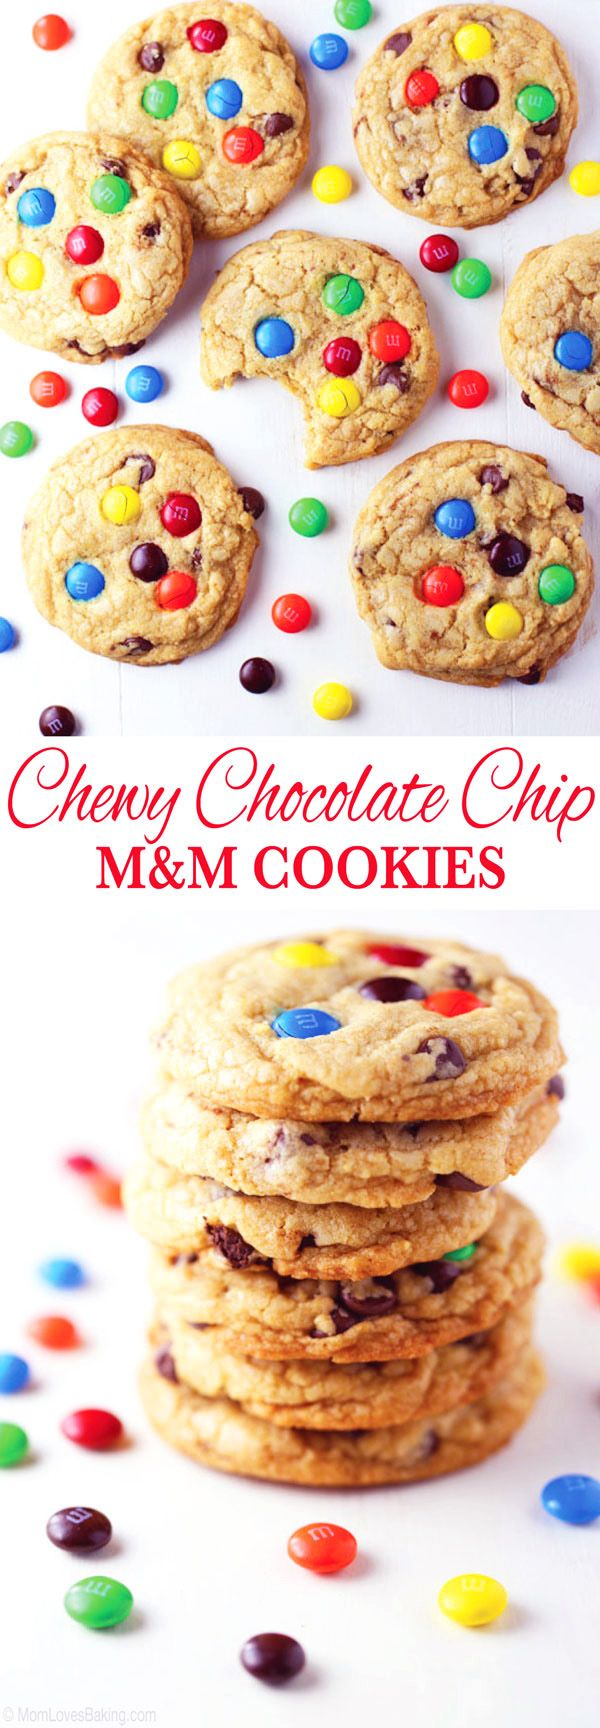 VIDEO: How to make Chewy Chocolate Chip M&M Cookies. Hands down, my family's favorite cookie! Soft, chewy, chocolatey and completely delicious! Easy to make too. See the video and get recipe on http://MomLovesBaking.com